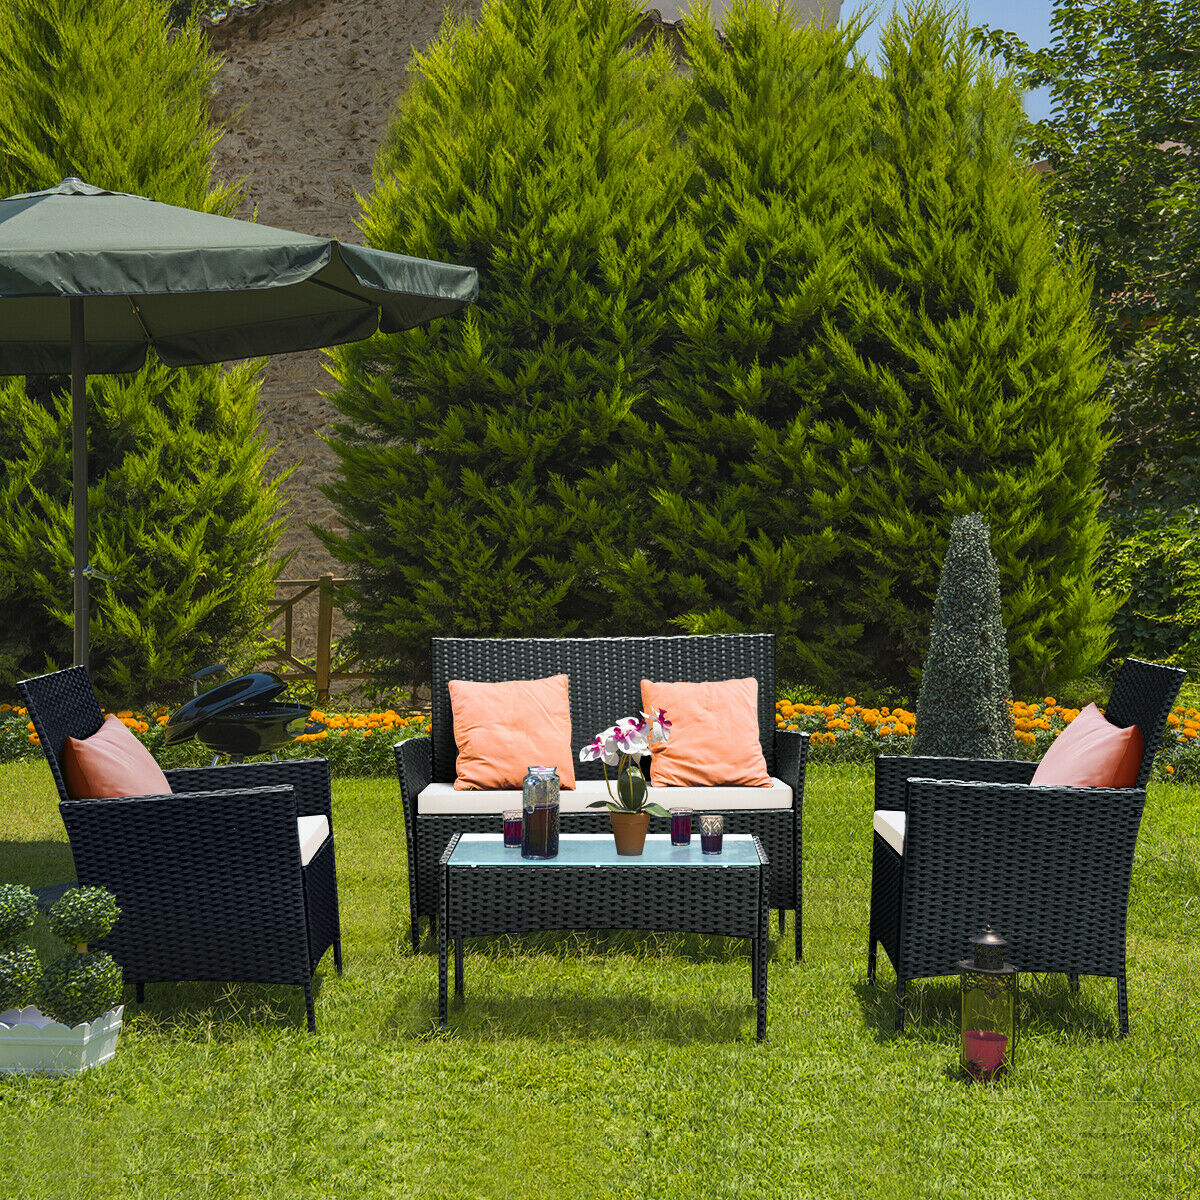 Costway 4 PCS Patio Rattan Wicker Furniture Set Loveseat Sofa Cushioned Outdoor Garden Yard